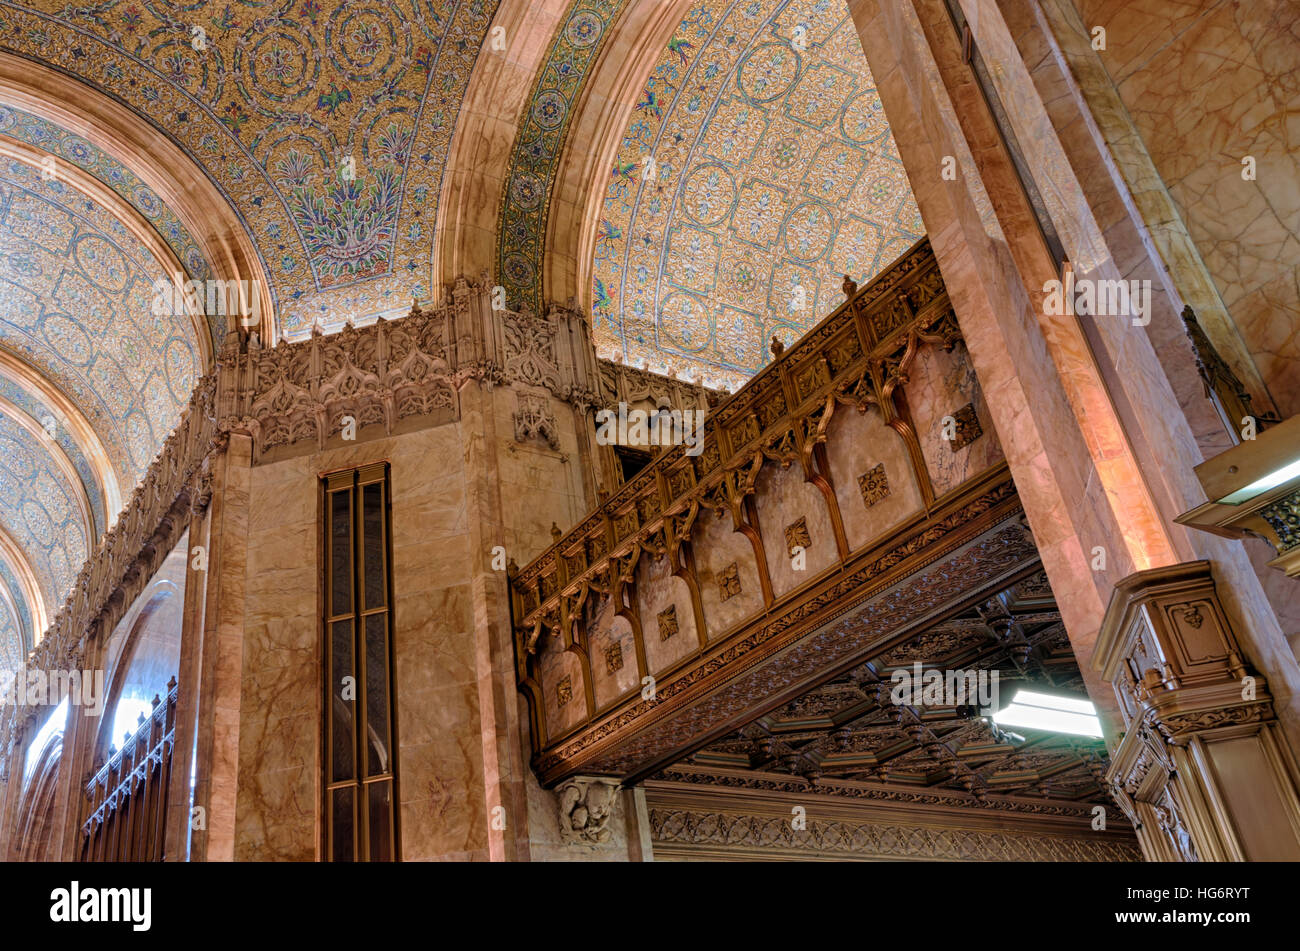 Interior architectural details of the lobby of the landmarked Woolworth Building in New York designed by architect - Stock Image